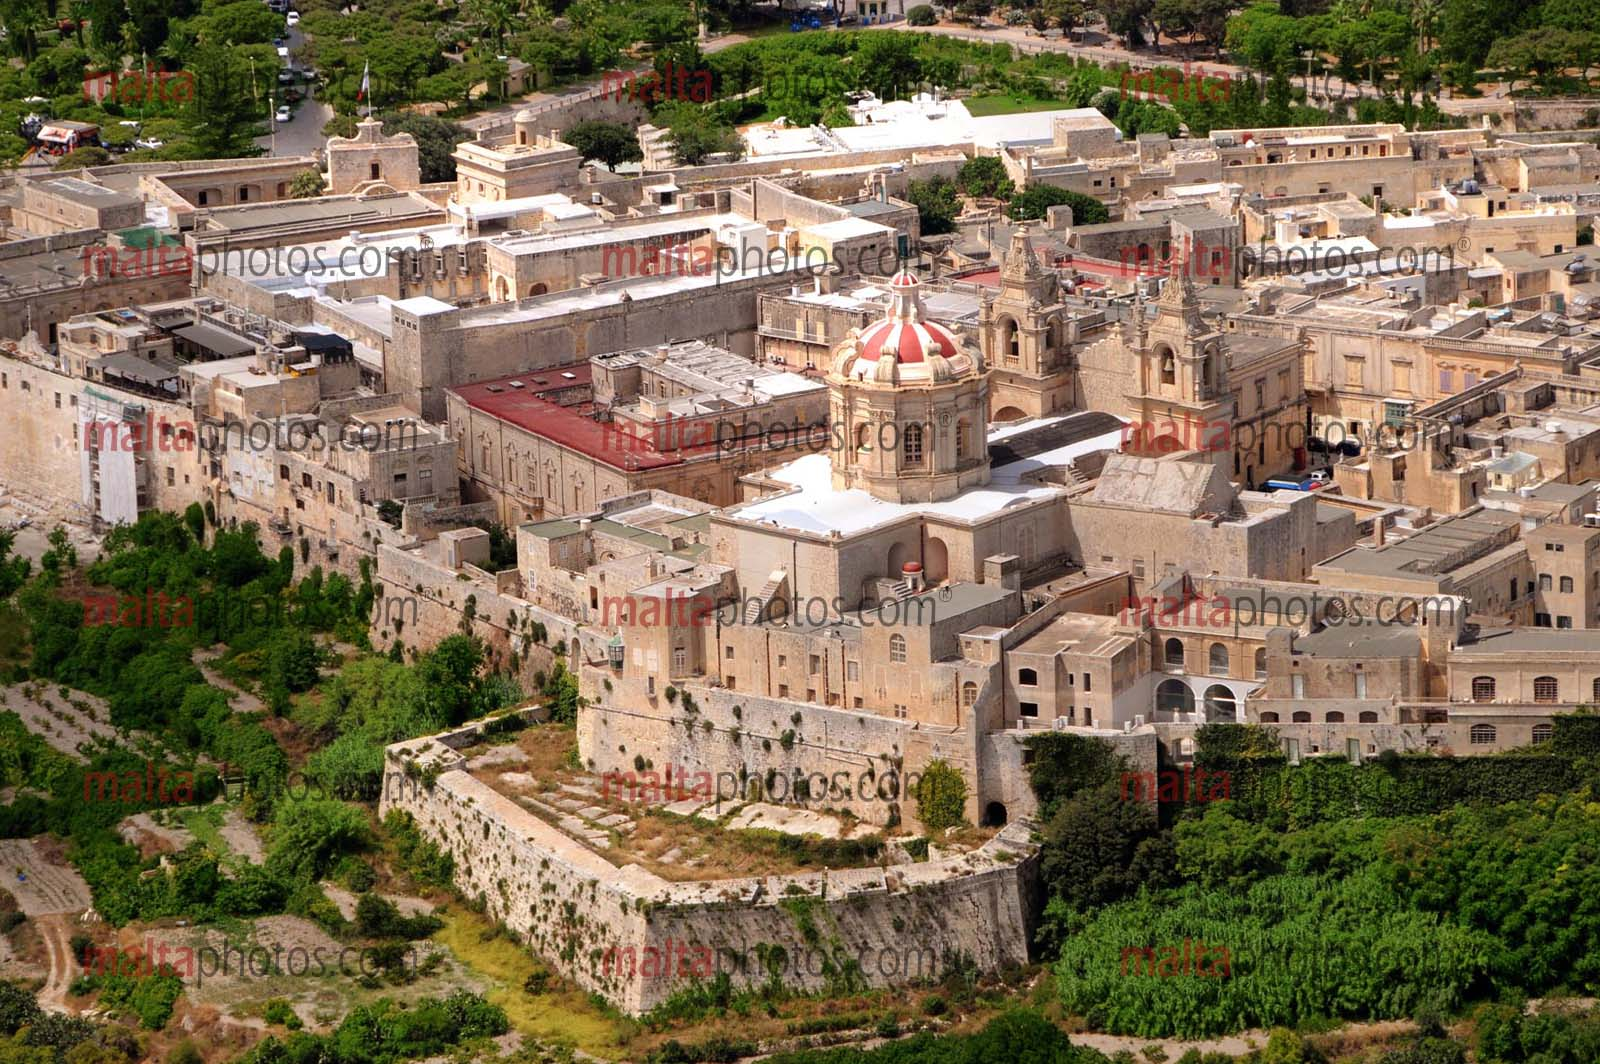 Mdina Cathdral Aerial Bastions Malta Photos